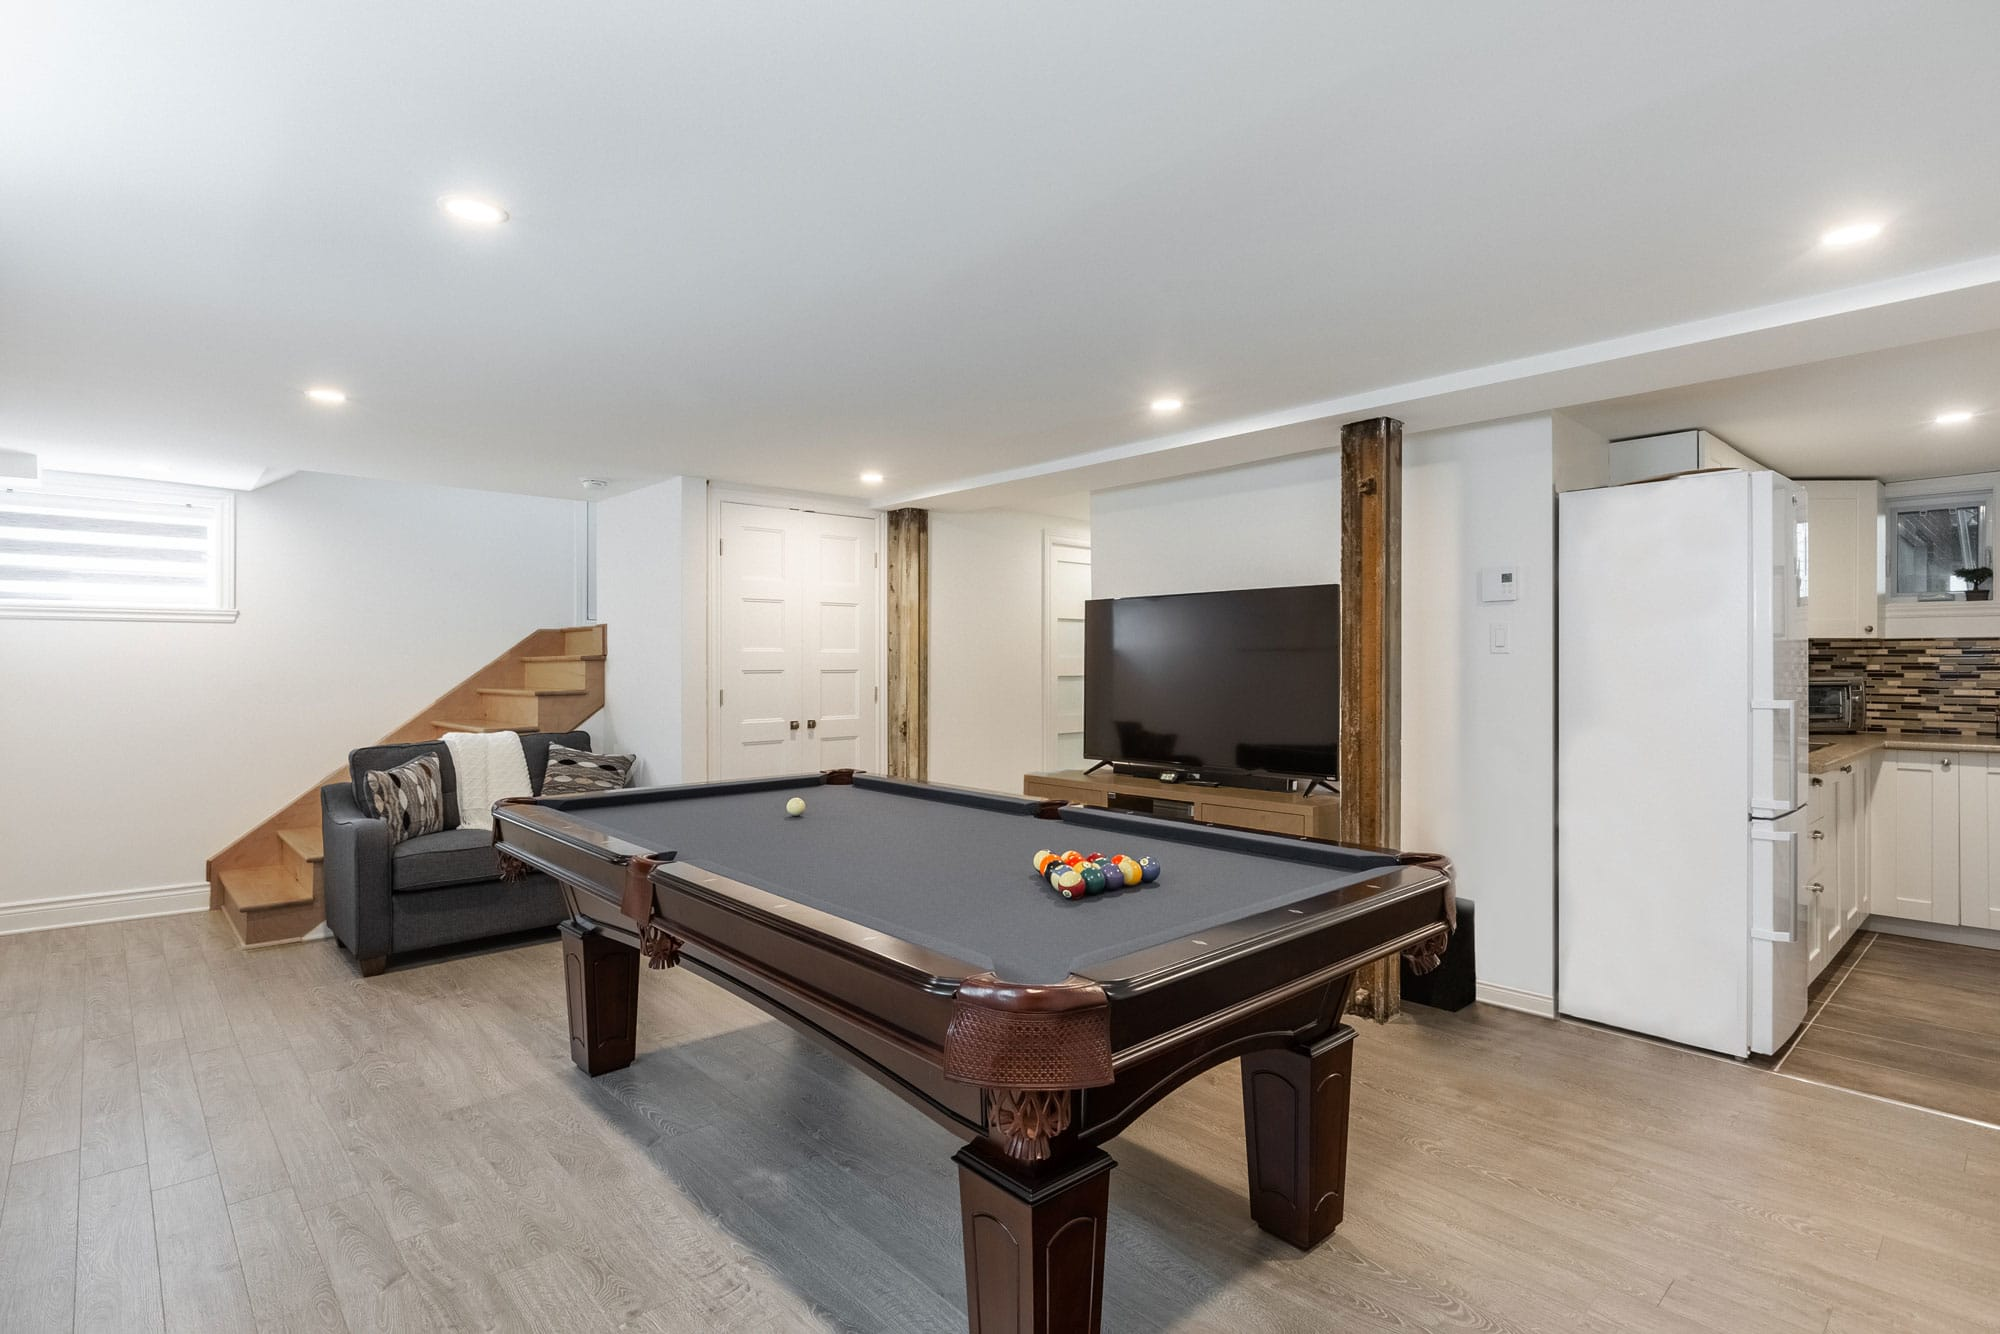 basement finishing with pool table and television